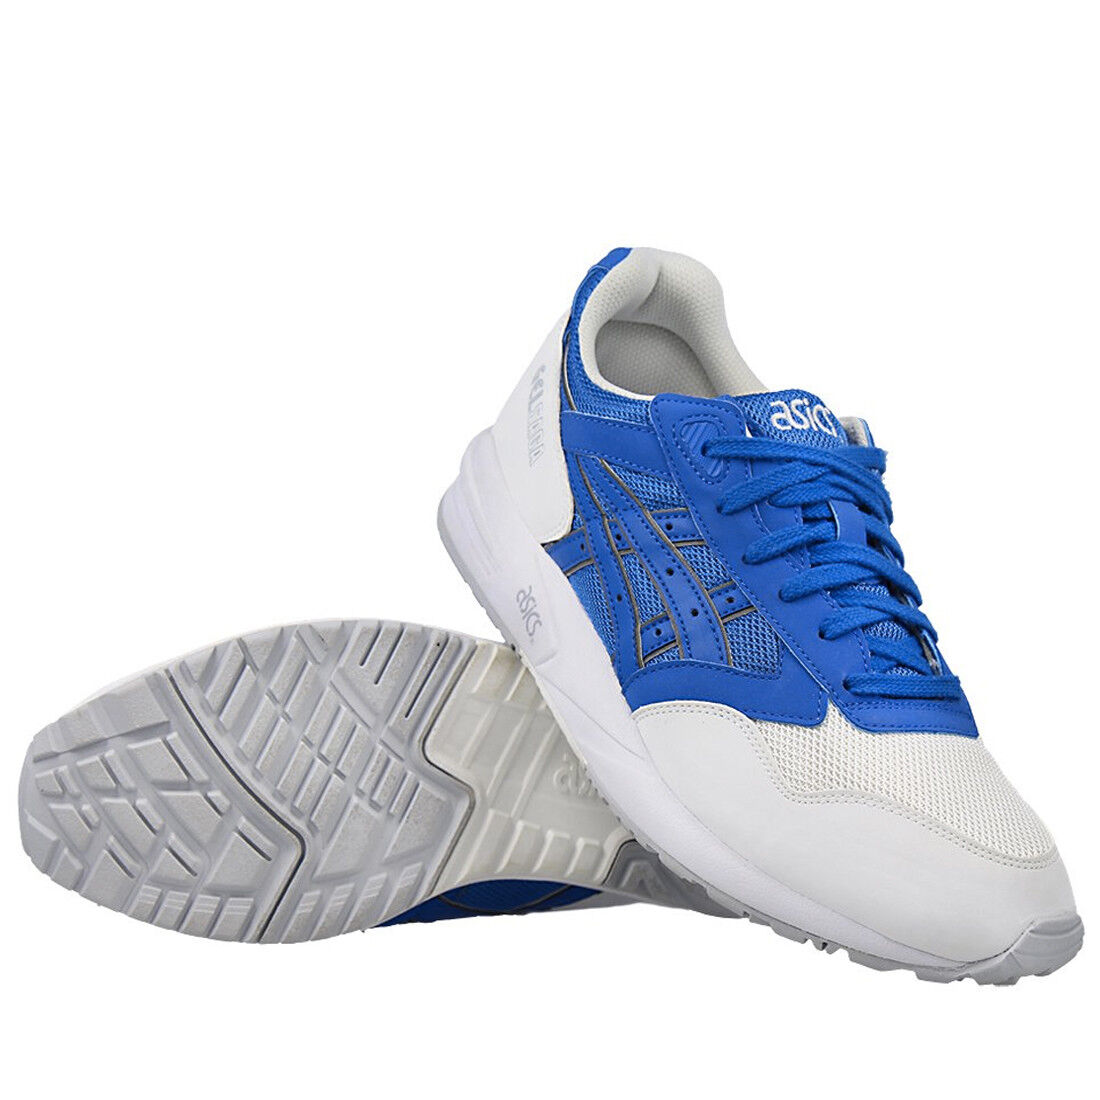 Asics Mens Trainers Gel Lyte Saga blueee White Athletic Running Sports shoes